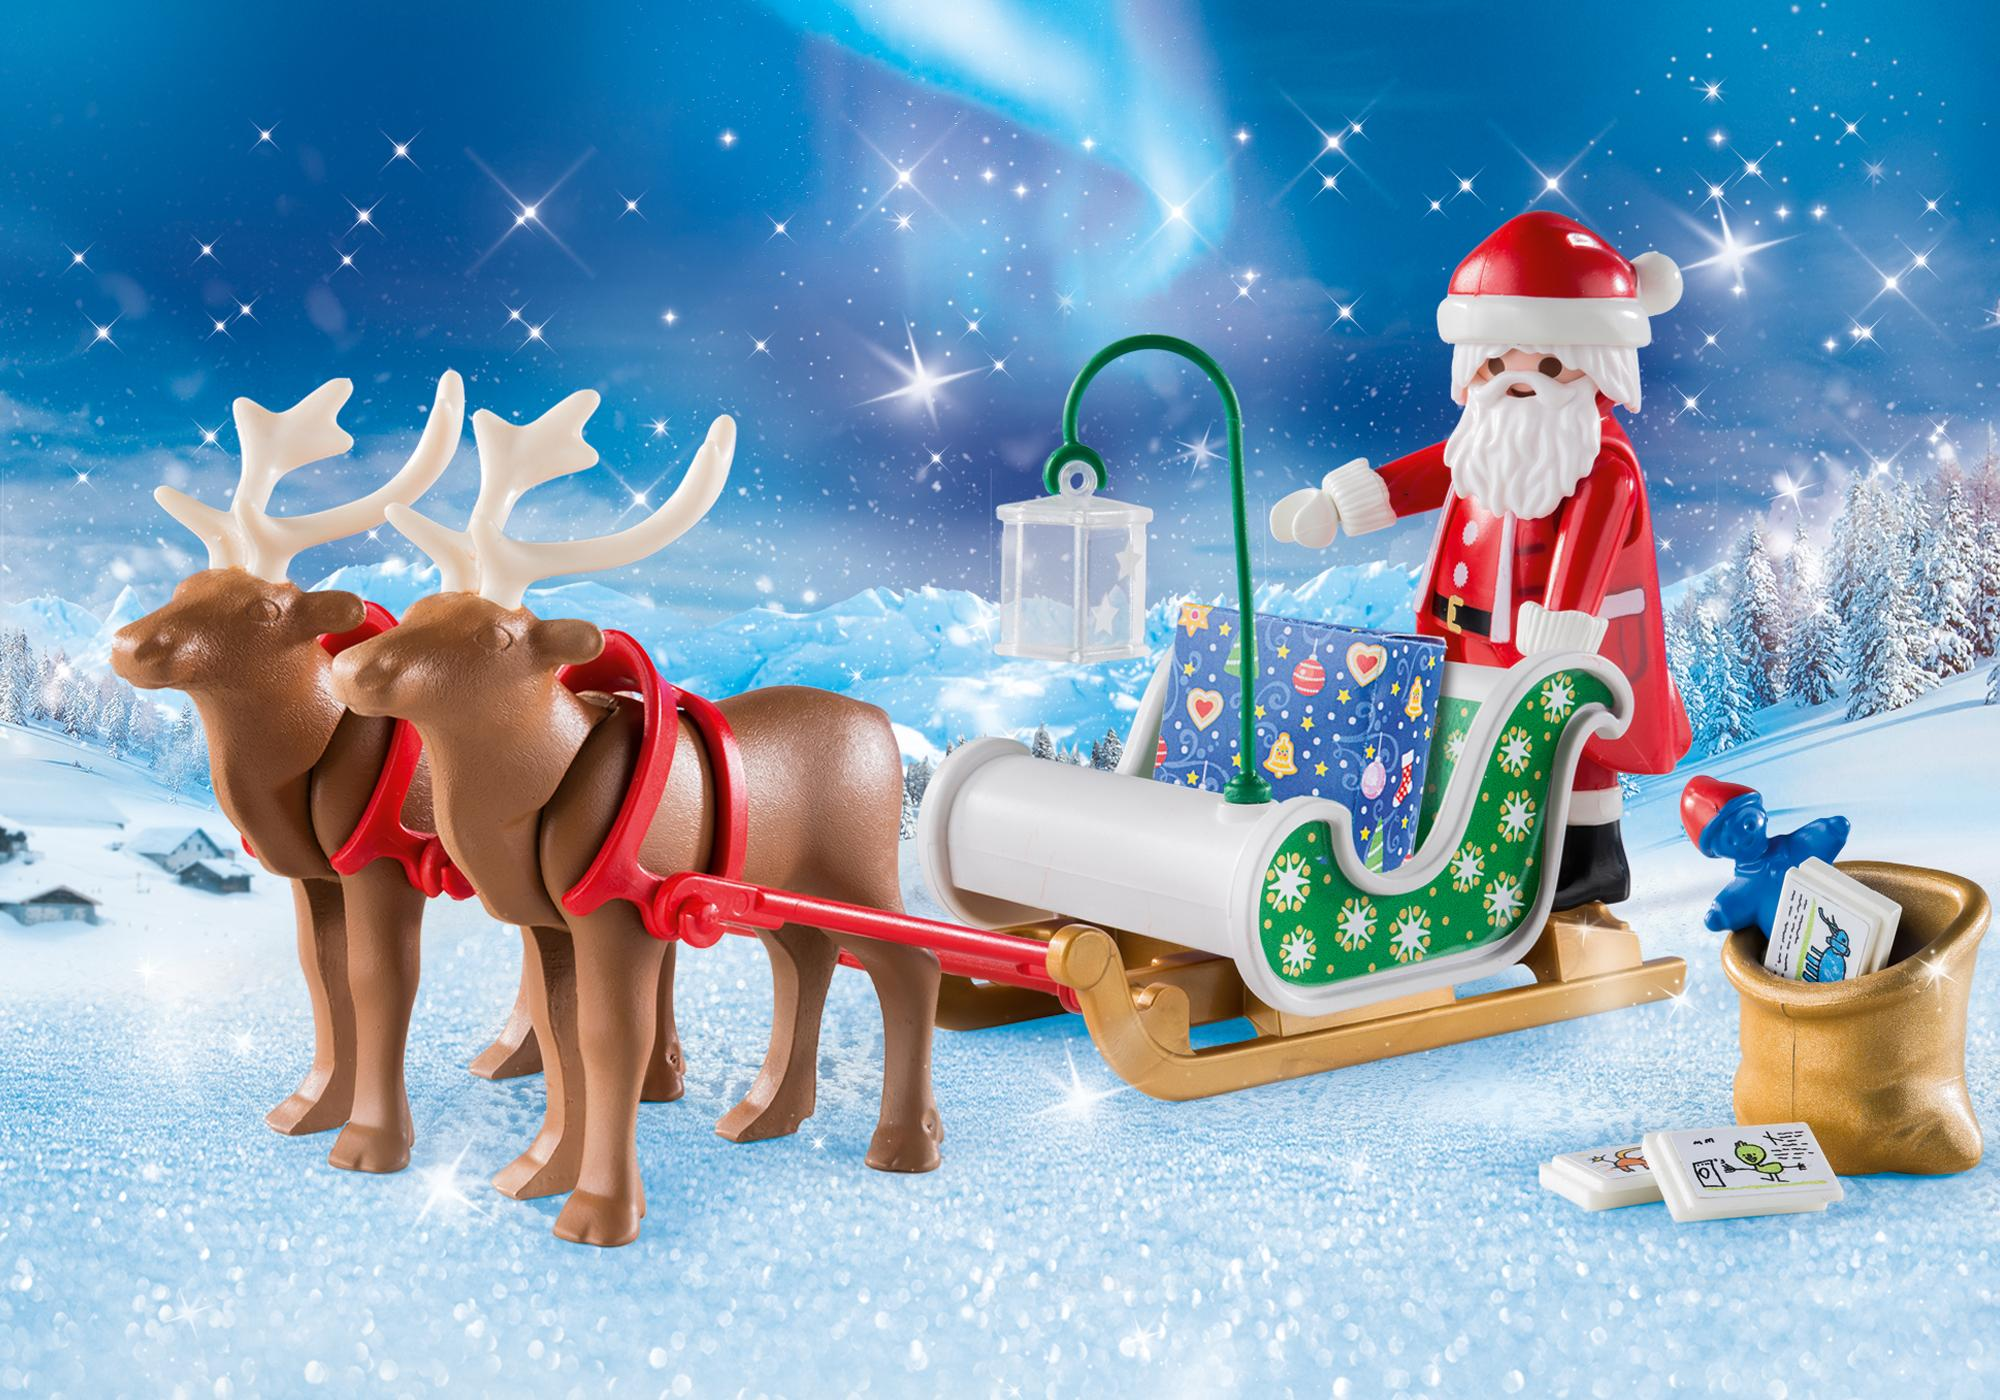 http://media.playmobil.com/i/playmobil/9496_product_detail/Trenó do Pai Natal com Rena